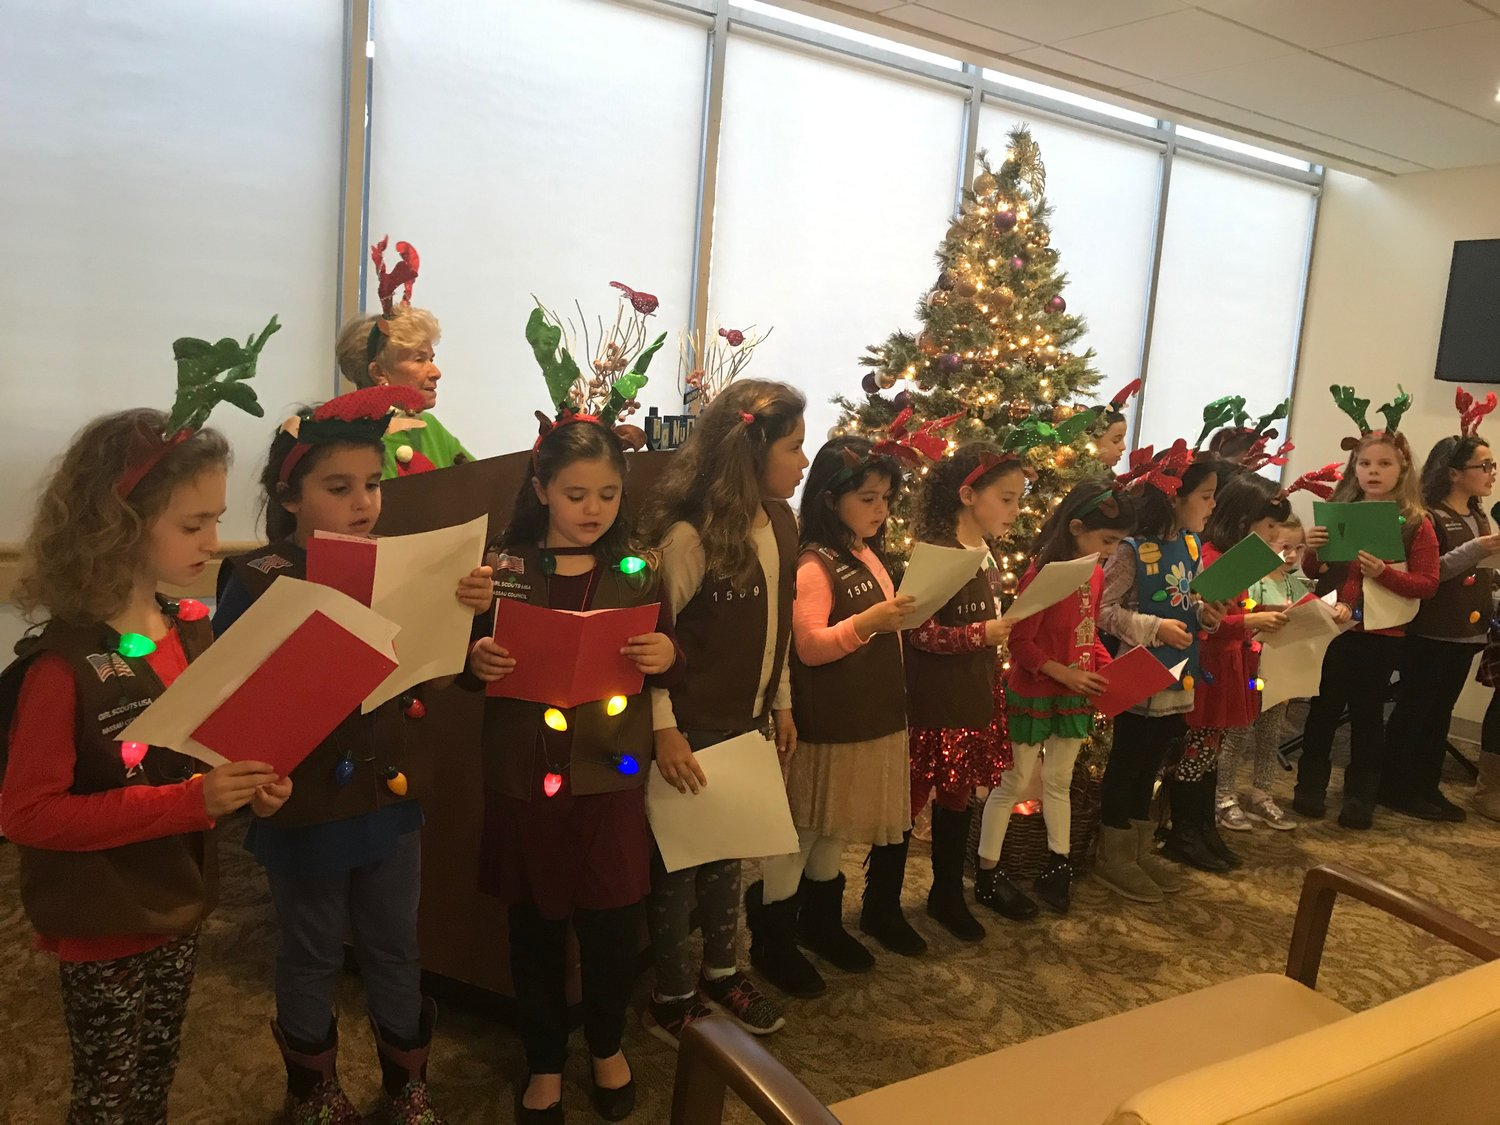 Daisies, Brownies and Girl Scouts entertained the crowd, sharing their love of the holidays at Glen Cove Hospital Auxiliary's tree lighting last Friday.